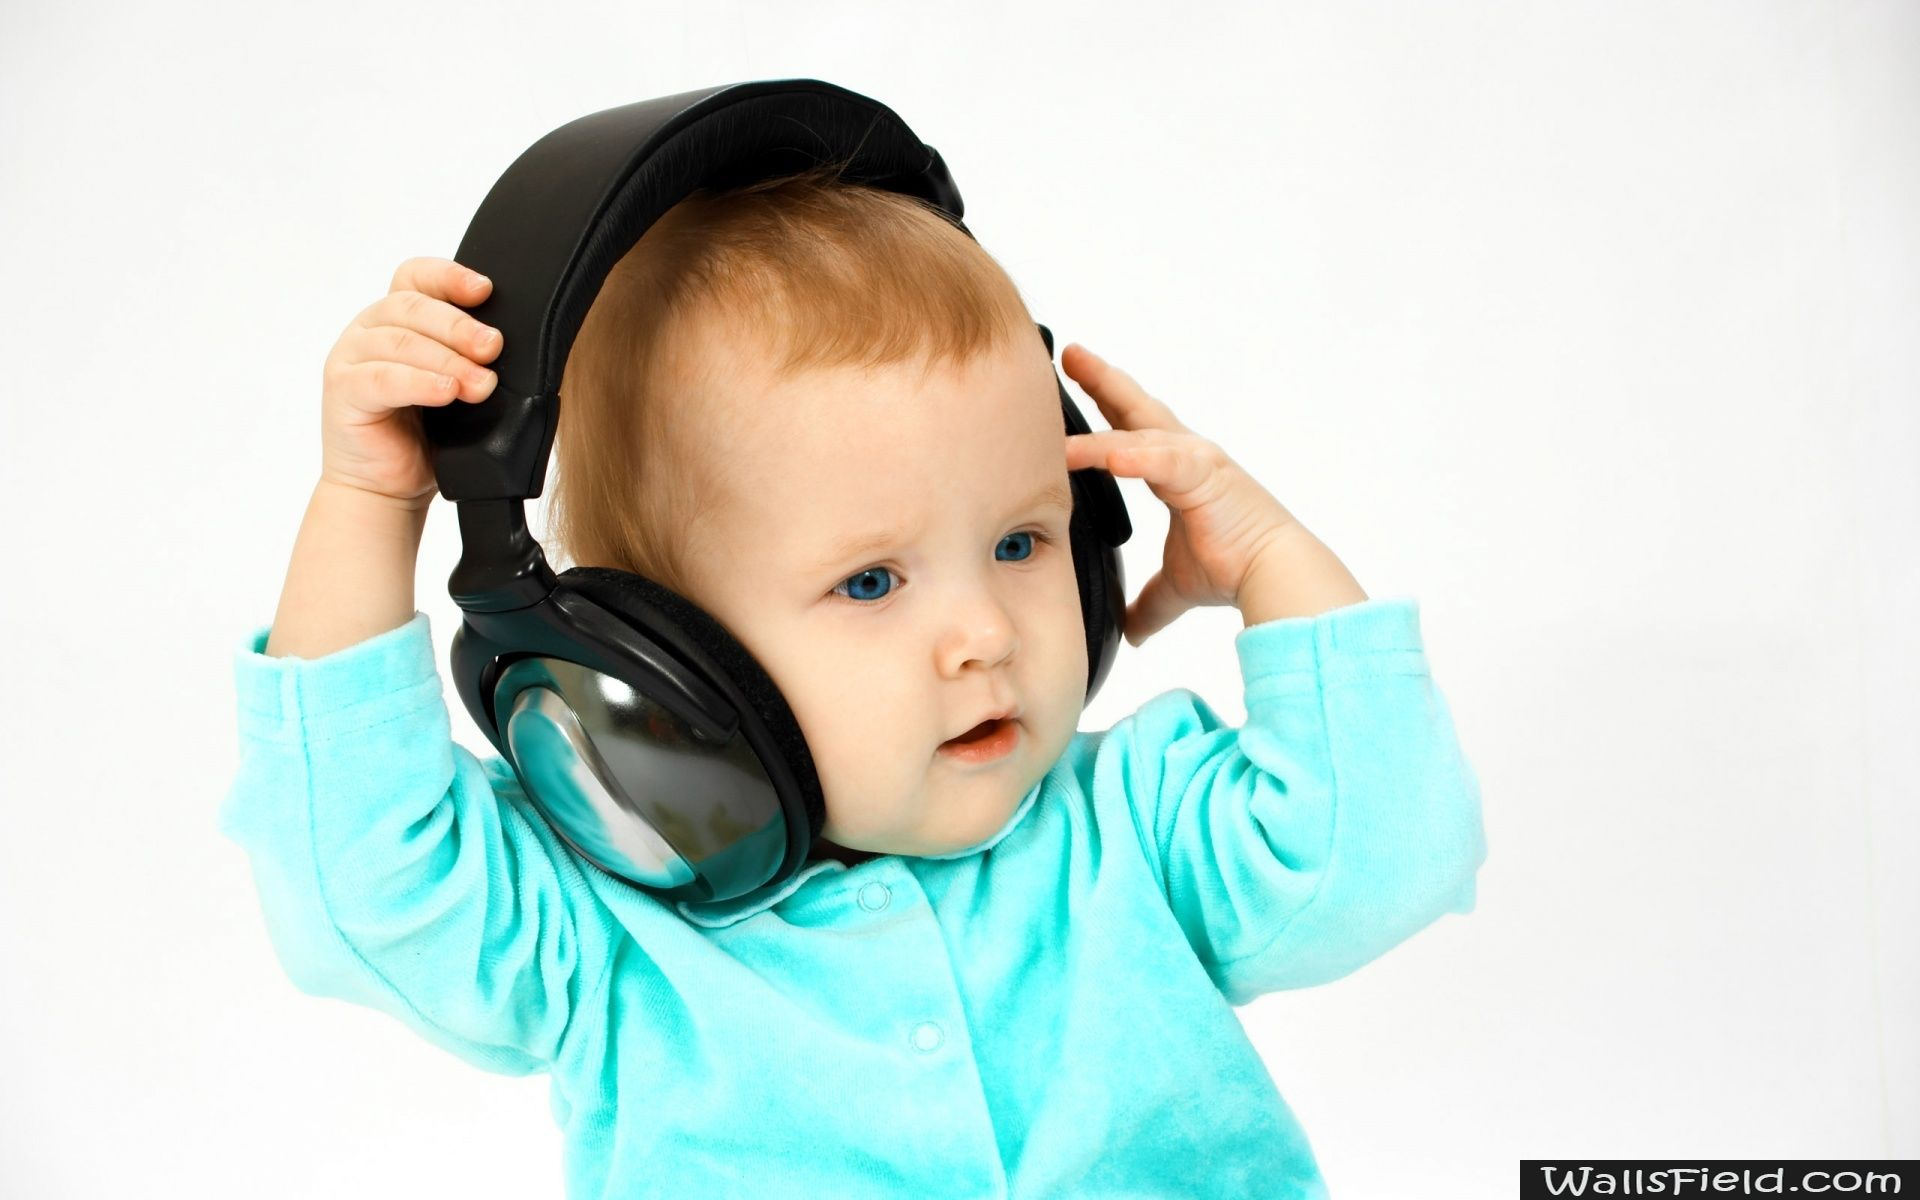 Dj Baby Wallsfield Com Free Hd Wallpapers Baby Wallpaper Baby Images Cute Baby Photos